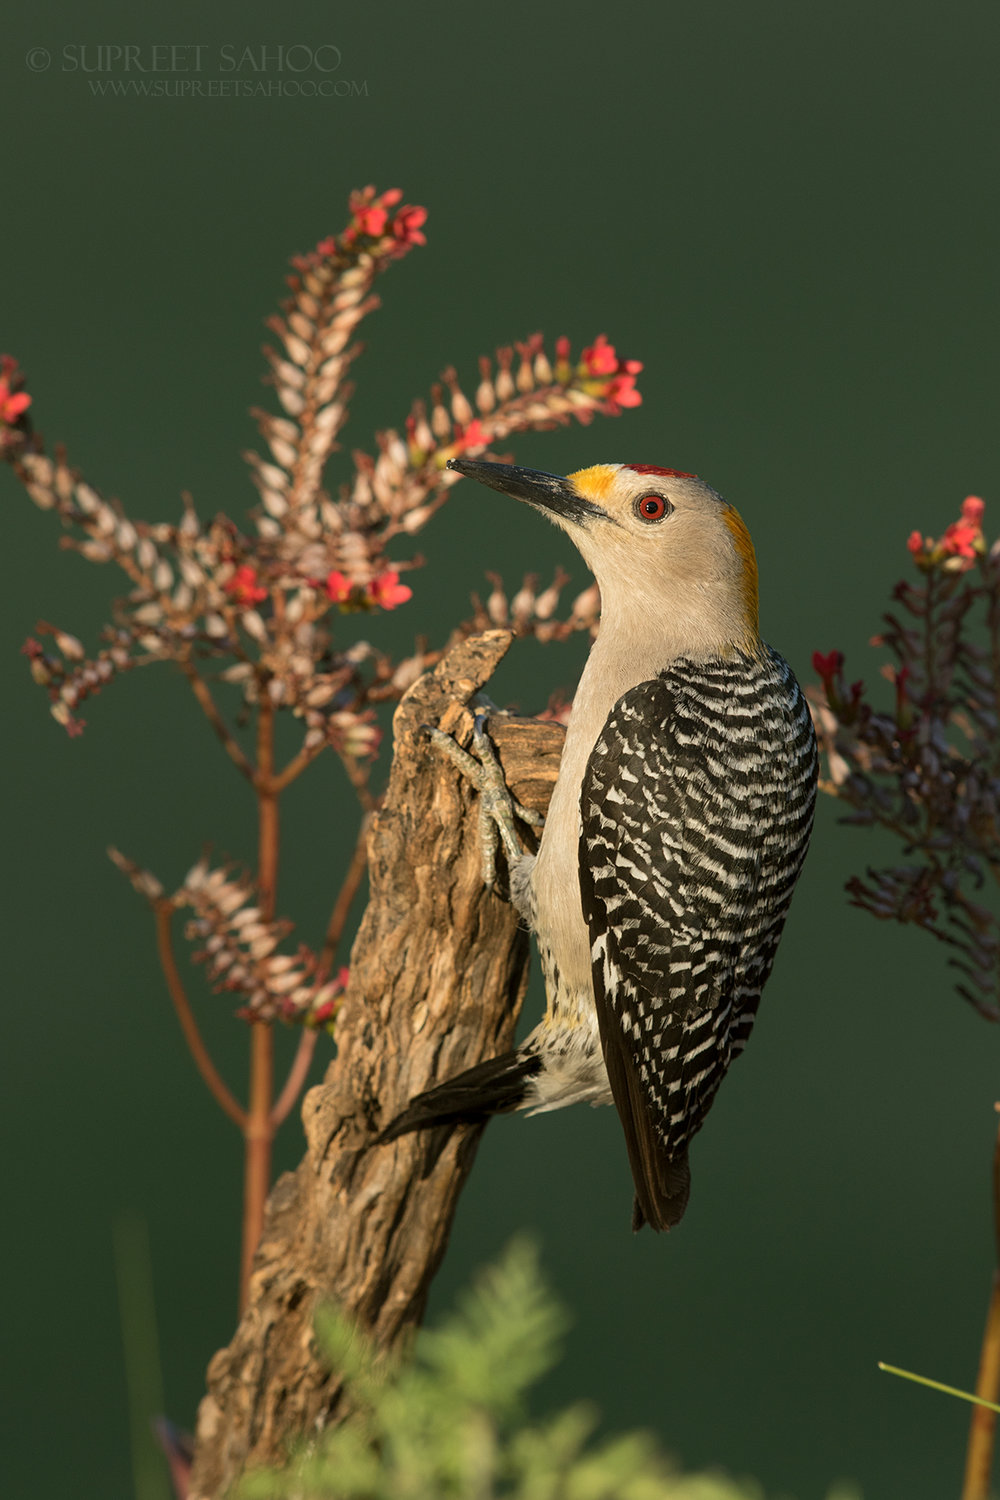 Capture tack-sharp images of rare birds.